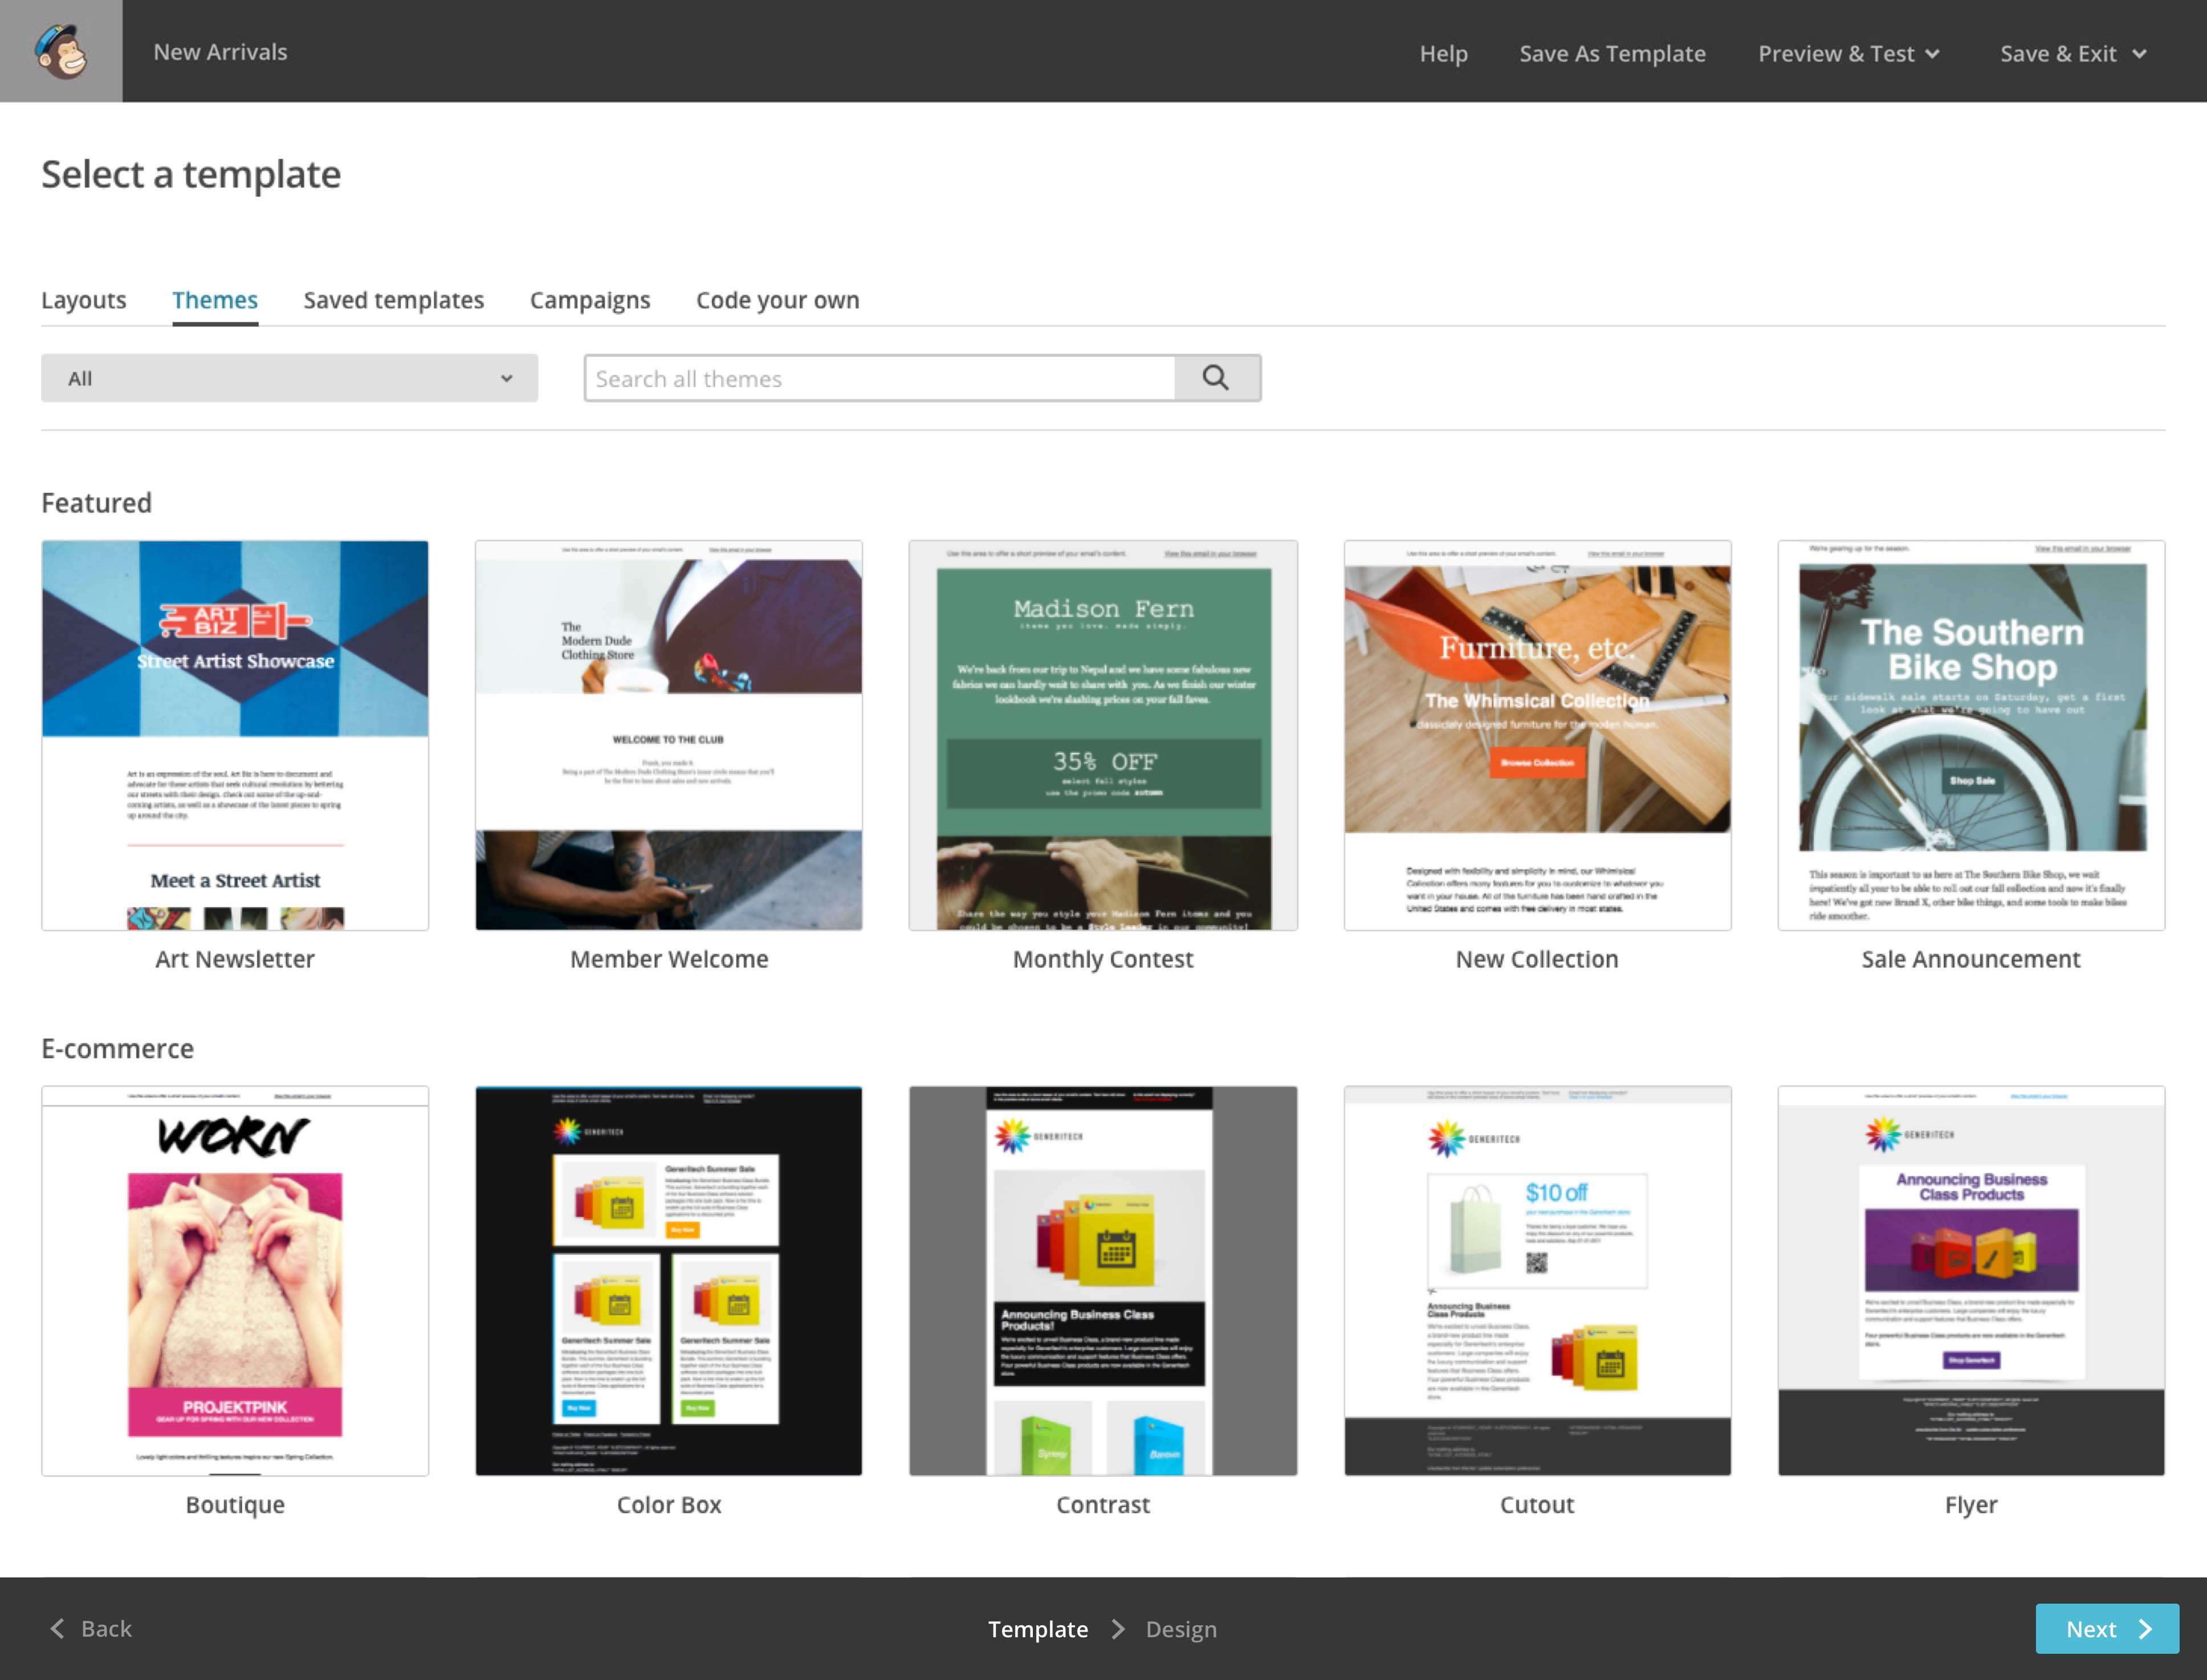 MailChimp Review: Why are Marketers Moving to Other Tools Instead?